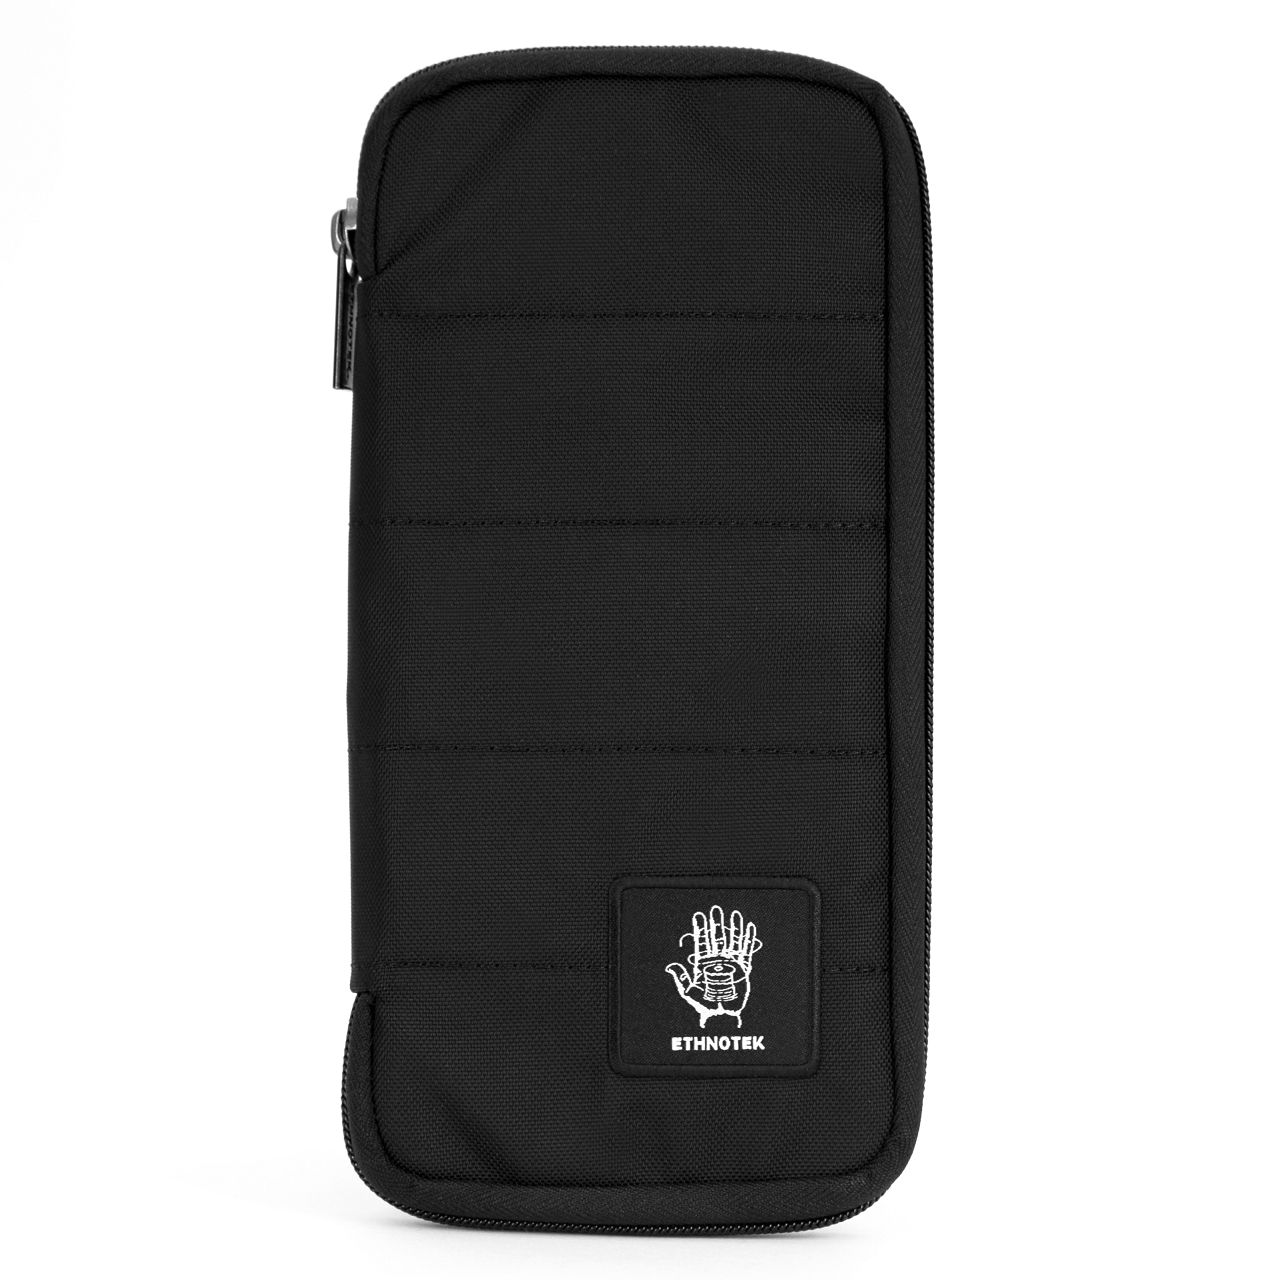 The Chiburi Travel Organizer Wallet Accessoires Pouch 5 In 1 Bags Bag Bild